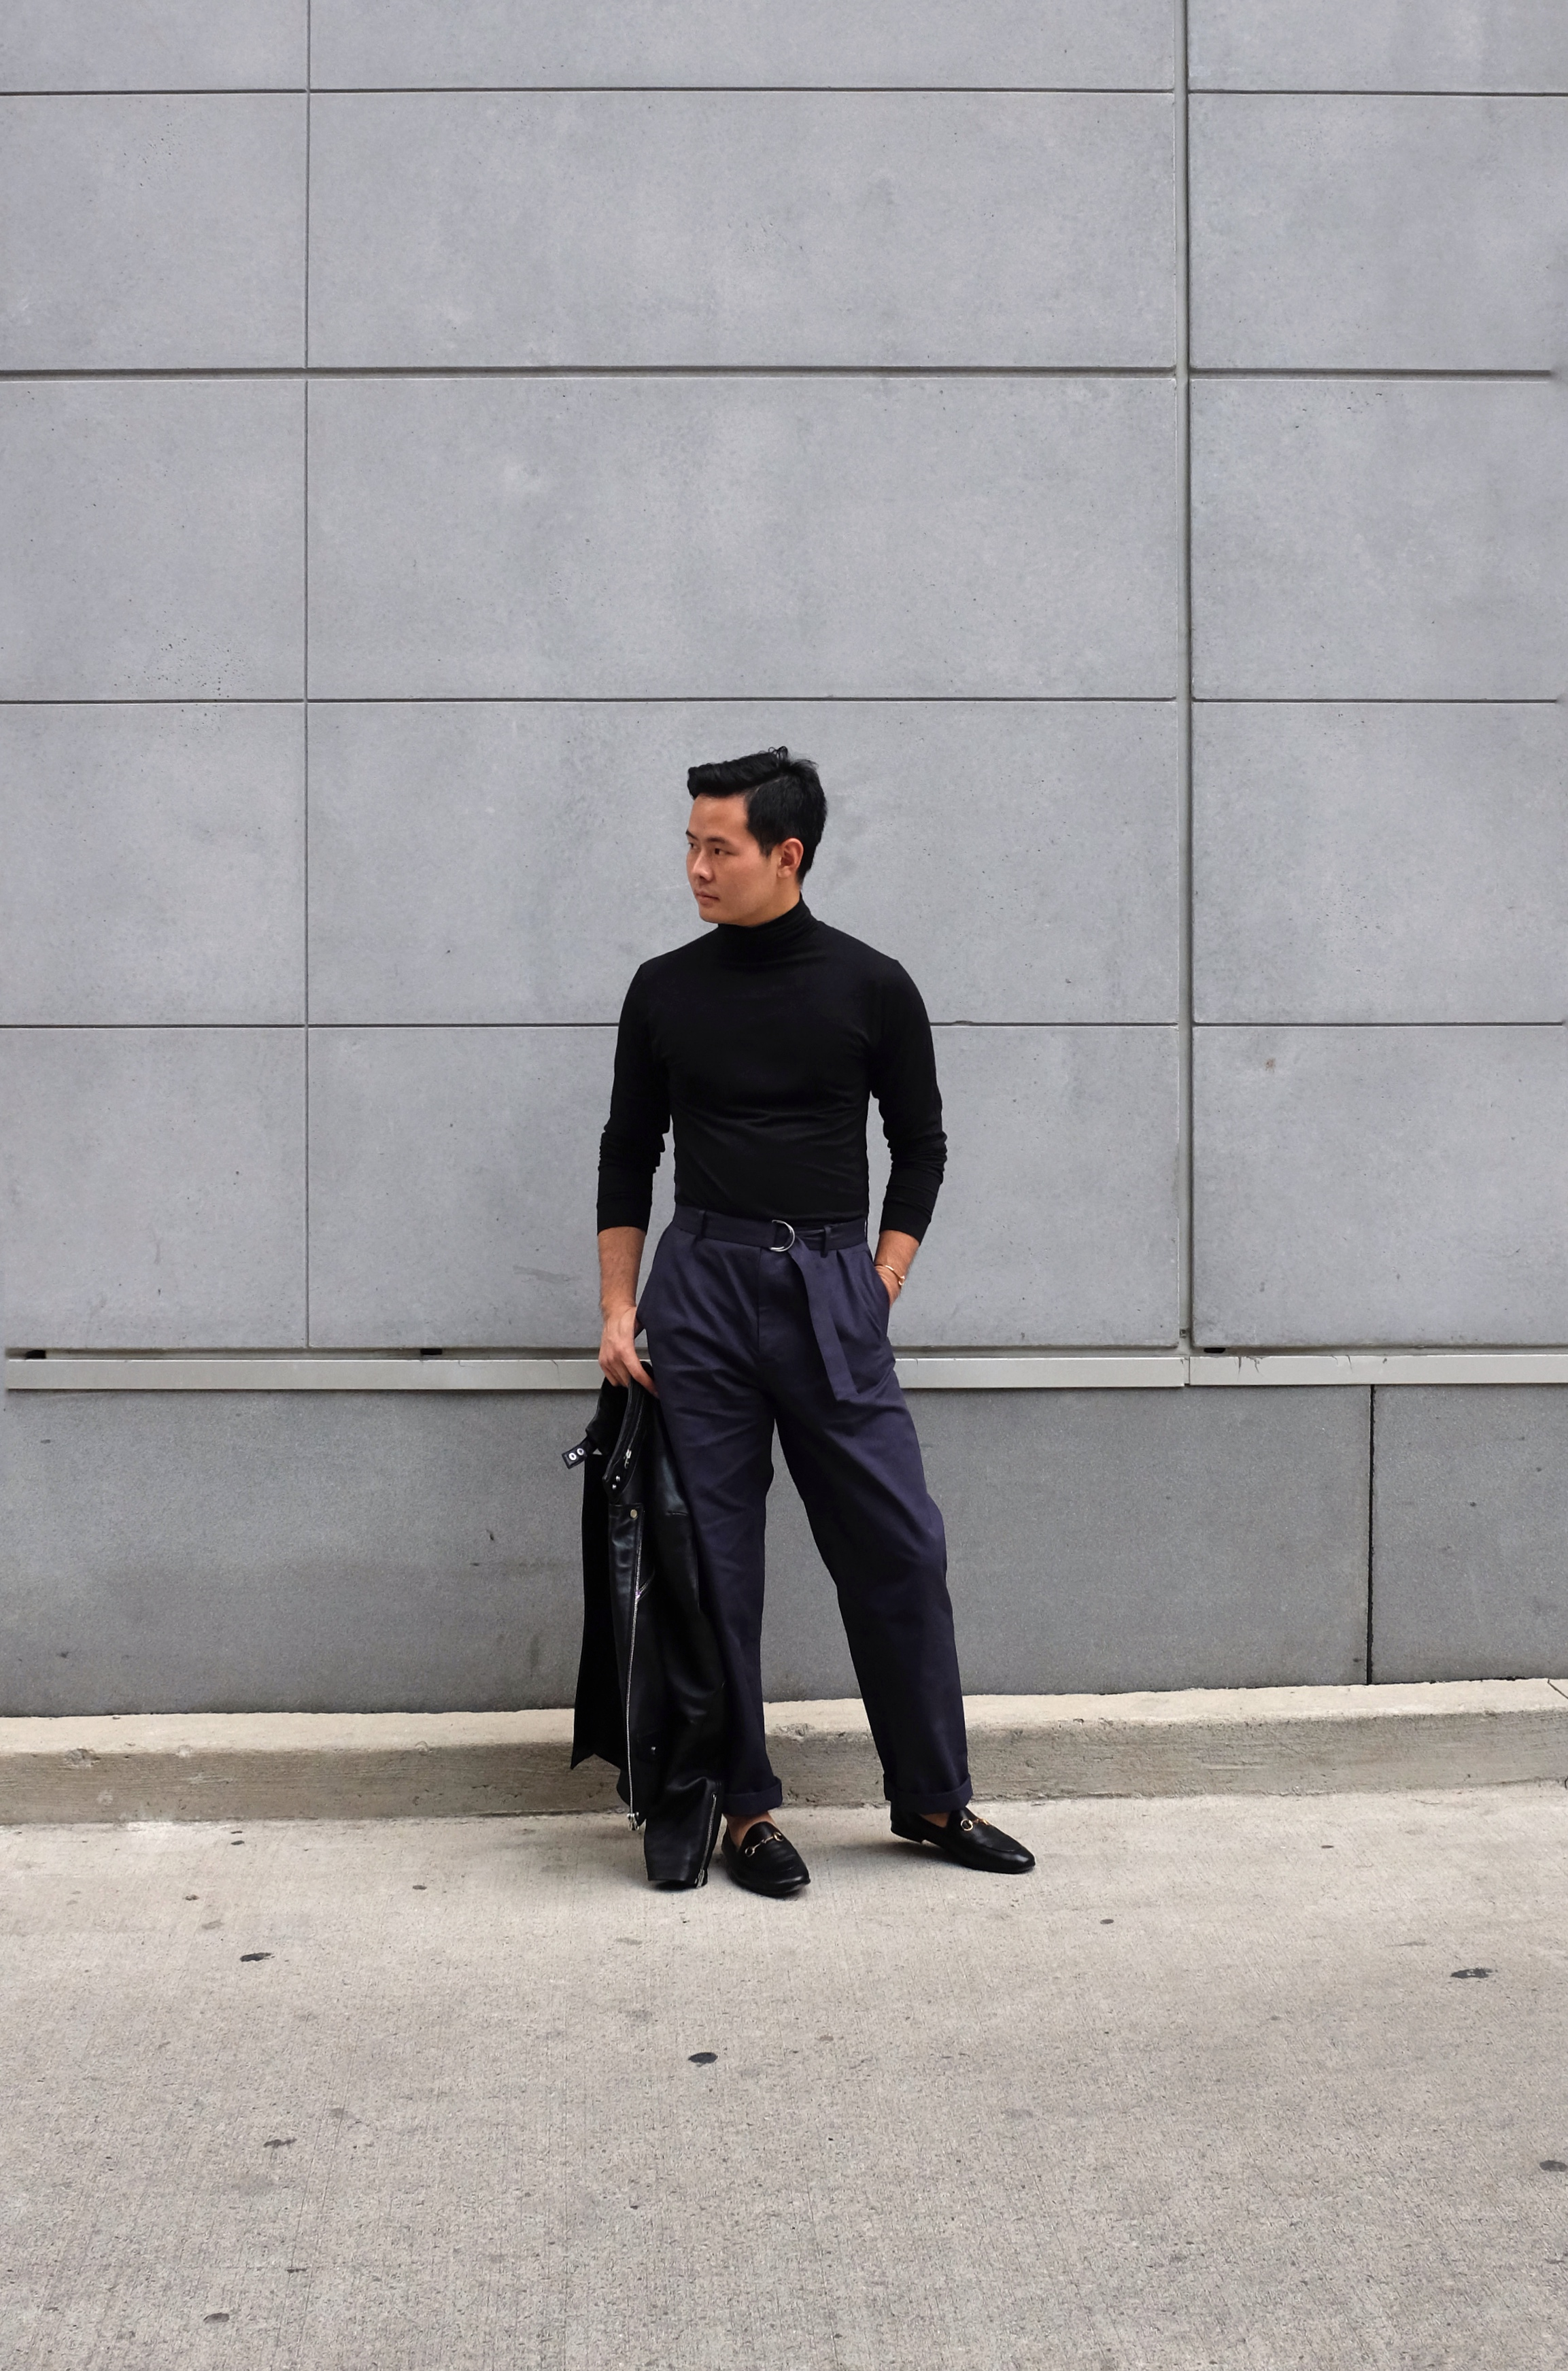 The roomier pants worked fantastically with a tighter turtleneck.